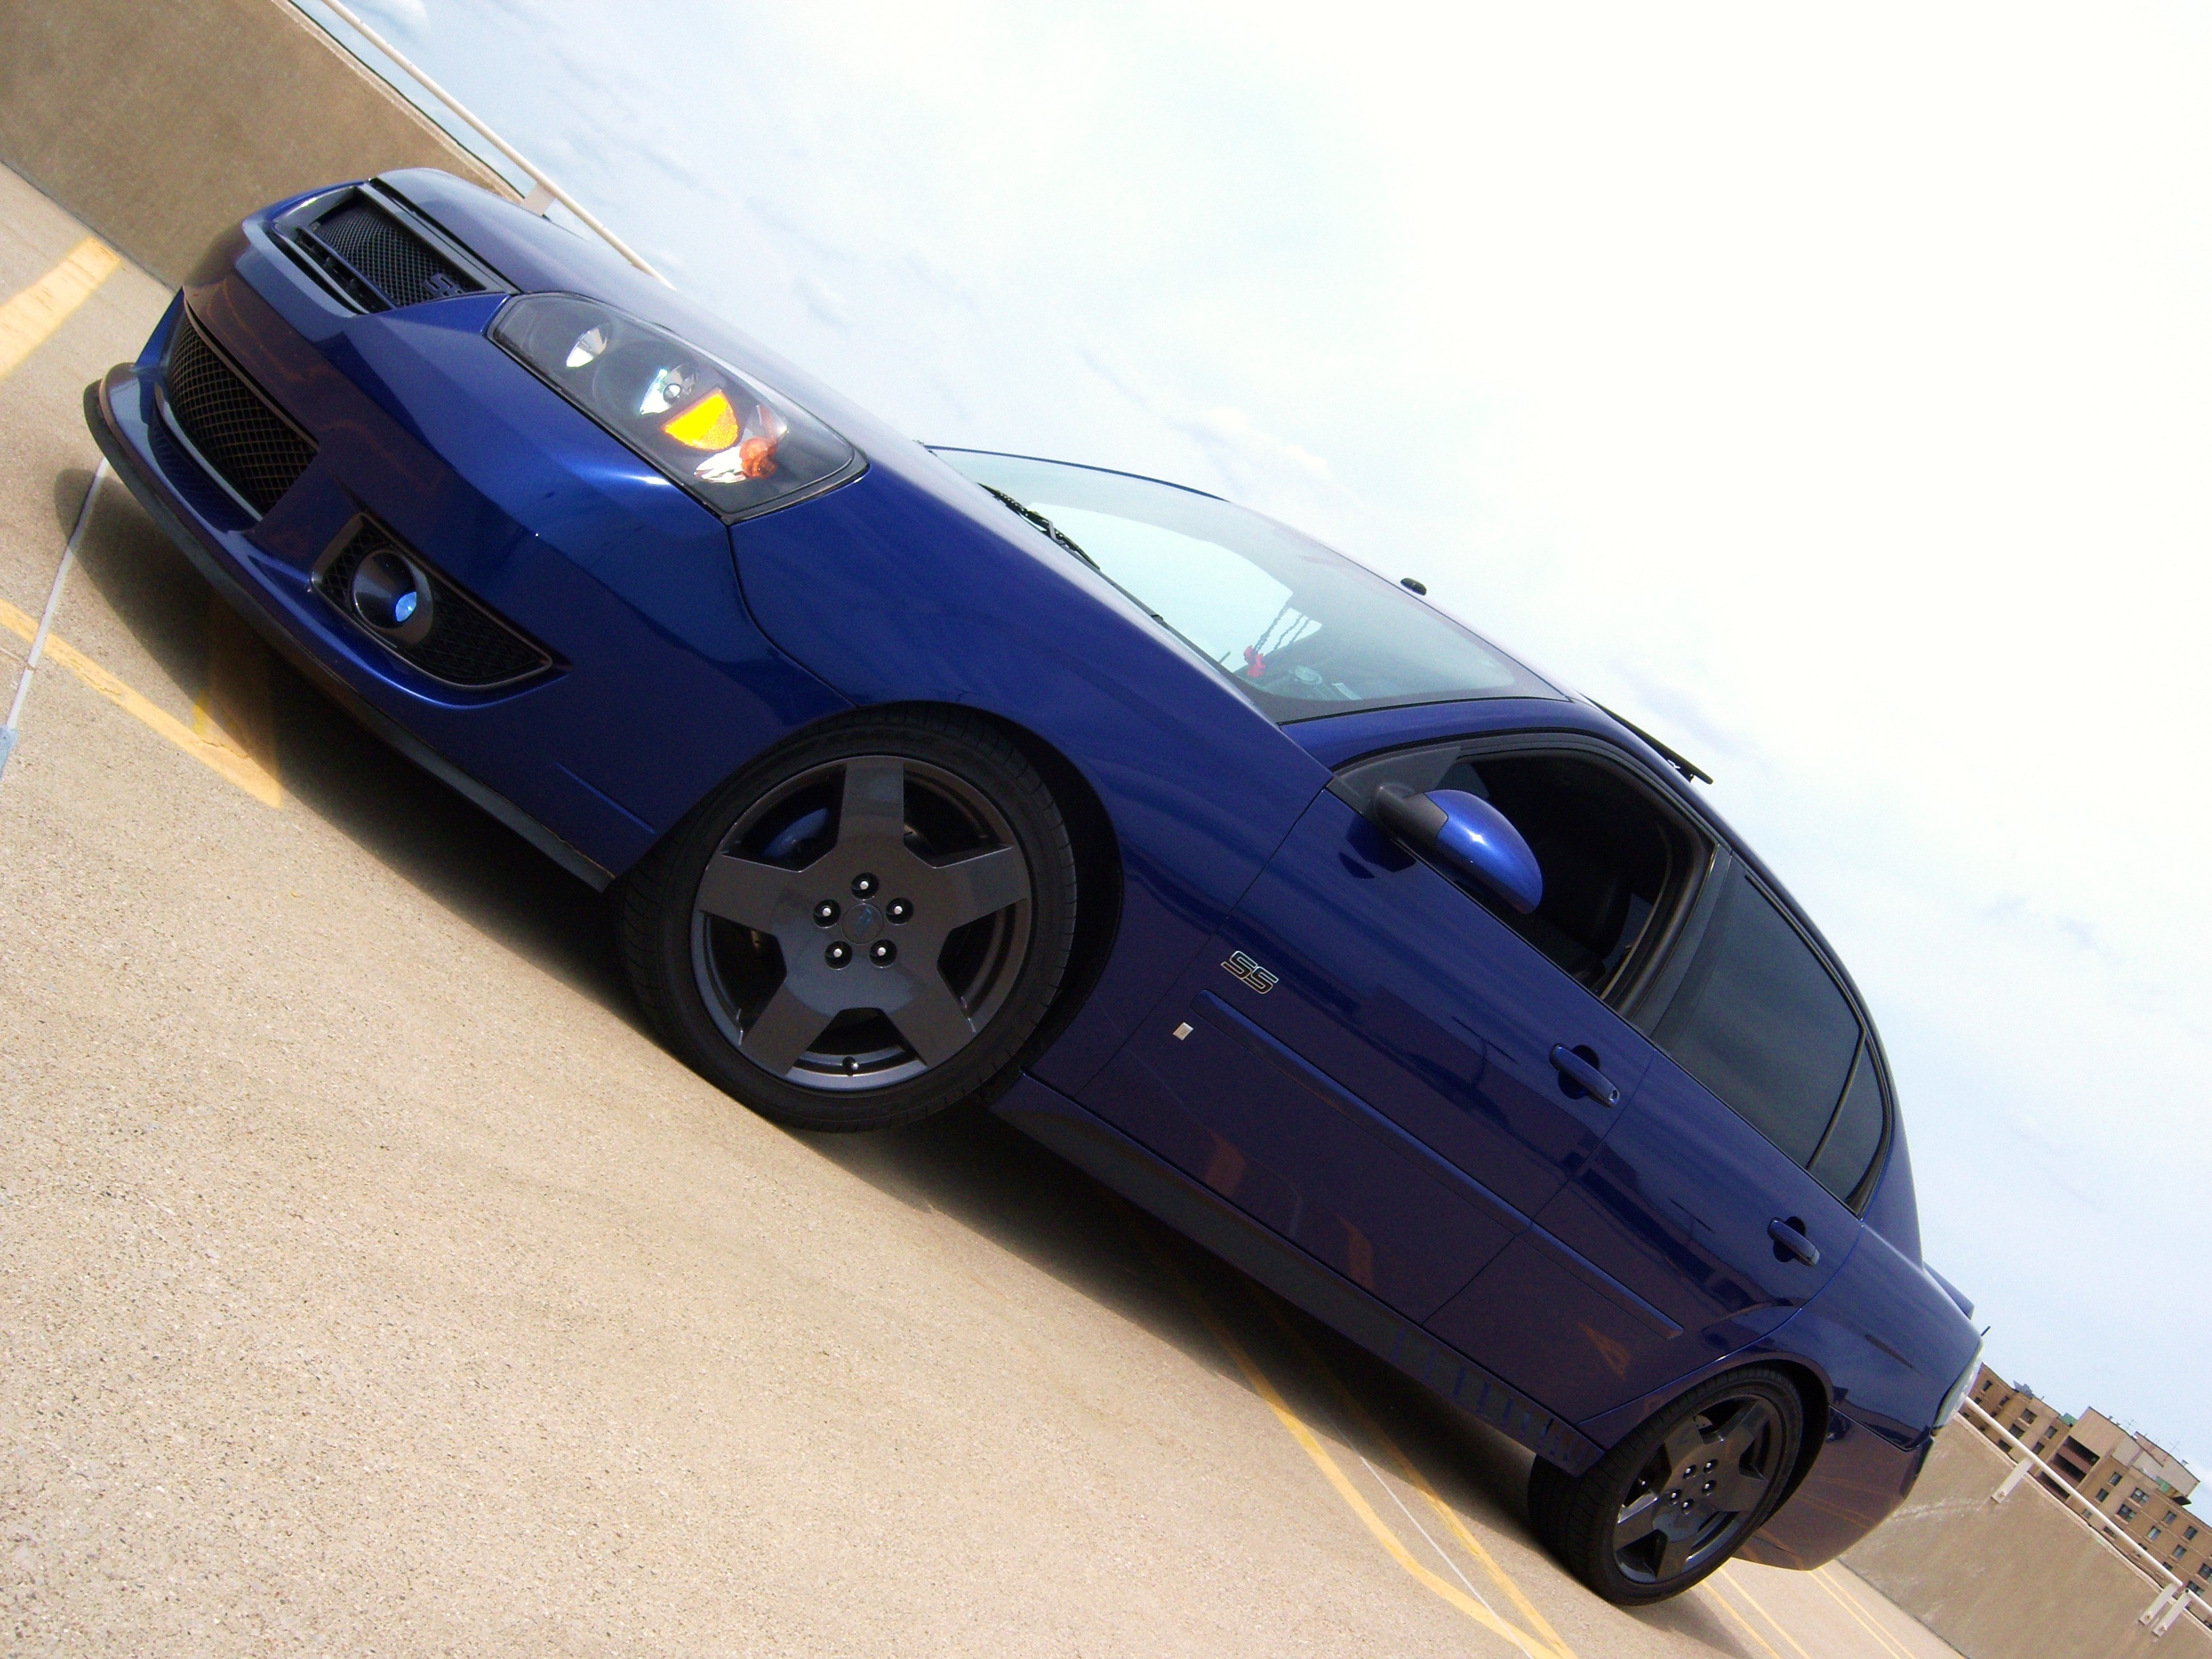 asa444 2006 Chevrolet Malibu Specs, Photos, Modification ...